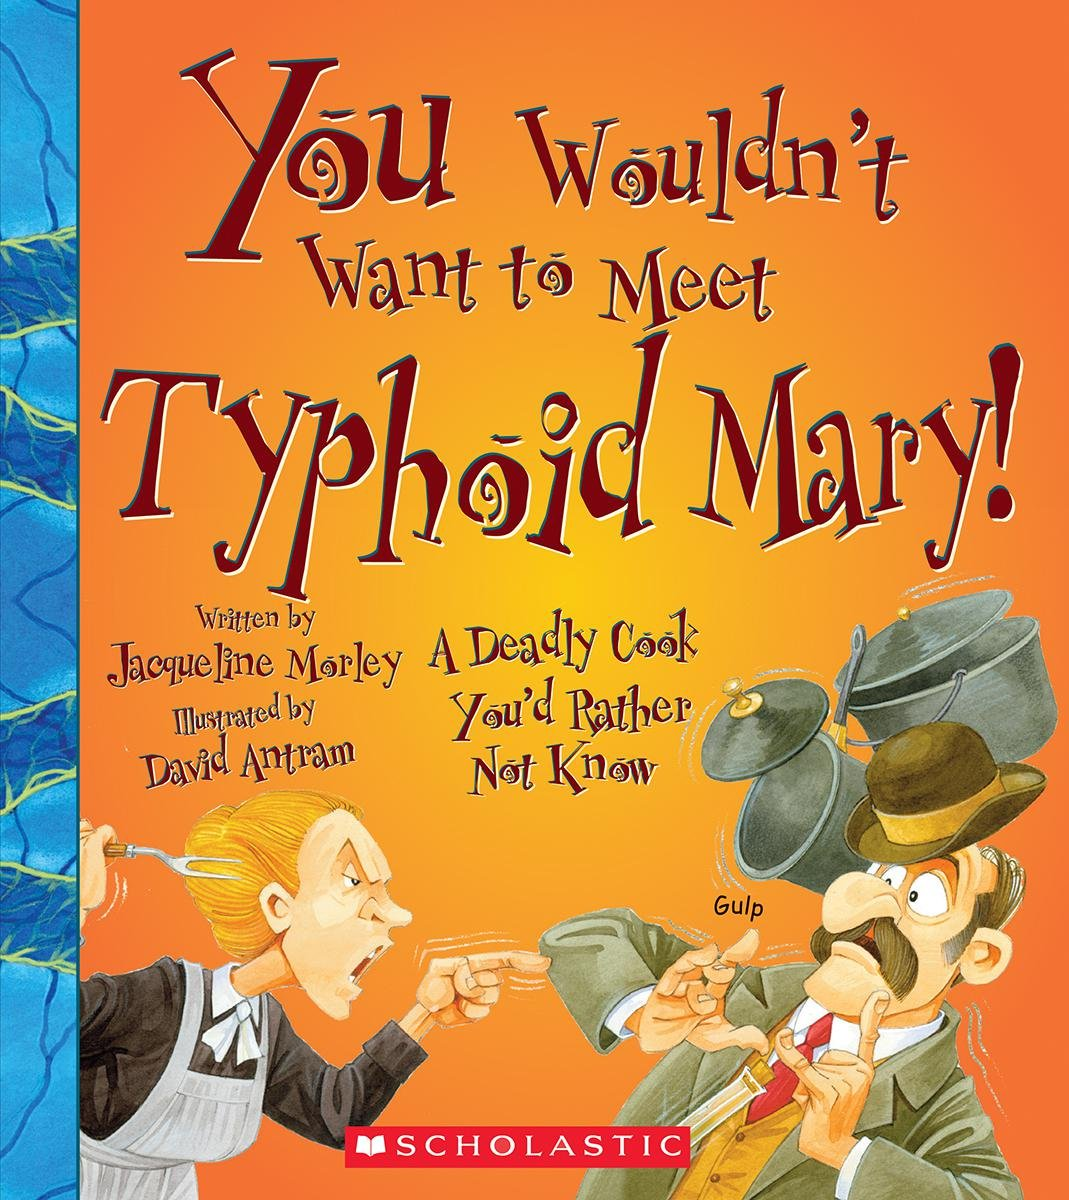 You Wouldn't Want to Meet Typhoid Mary!: Jacqueline Morley, David Salariya,  David Antram: 9780531230411: Amazon.com: Books